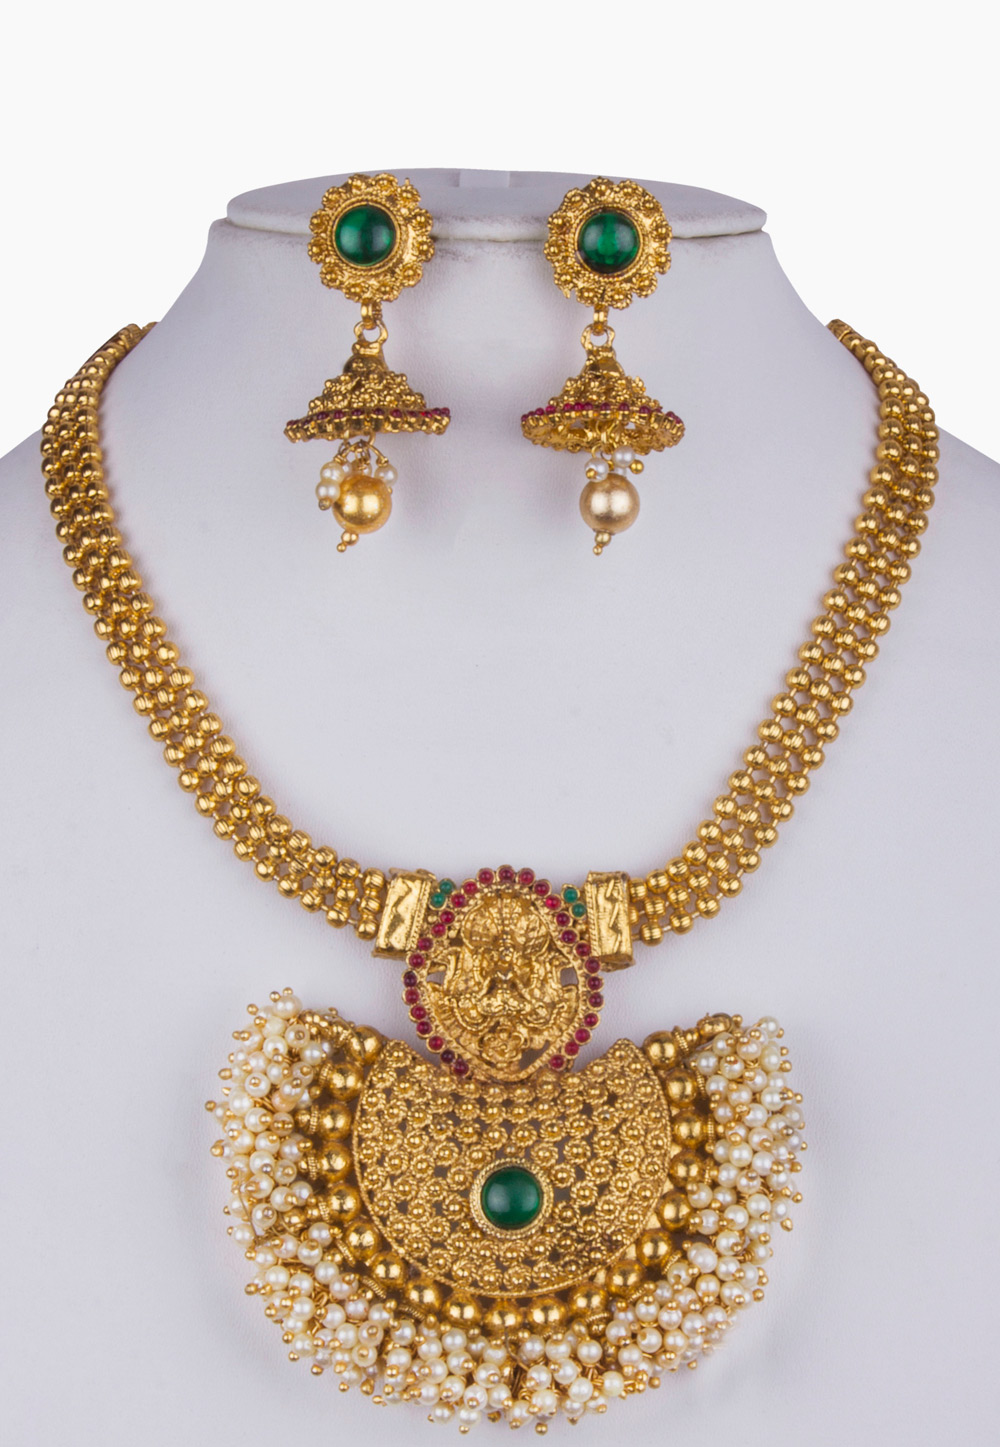 White Alloy Necklace With Earrings 157153